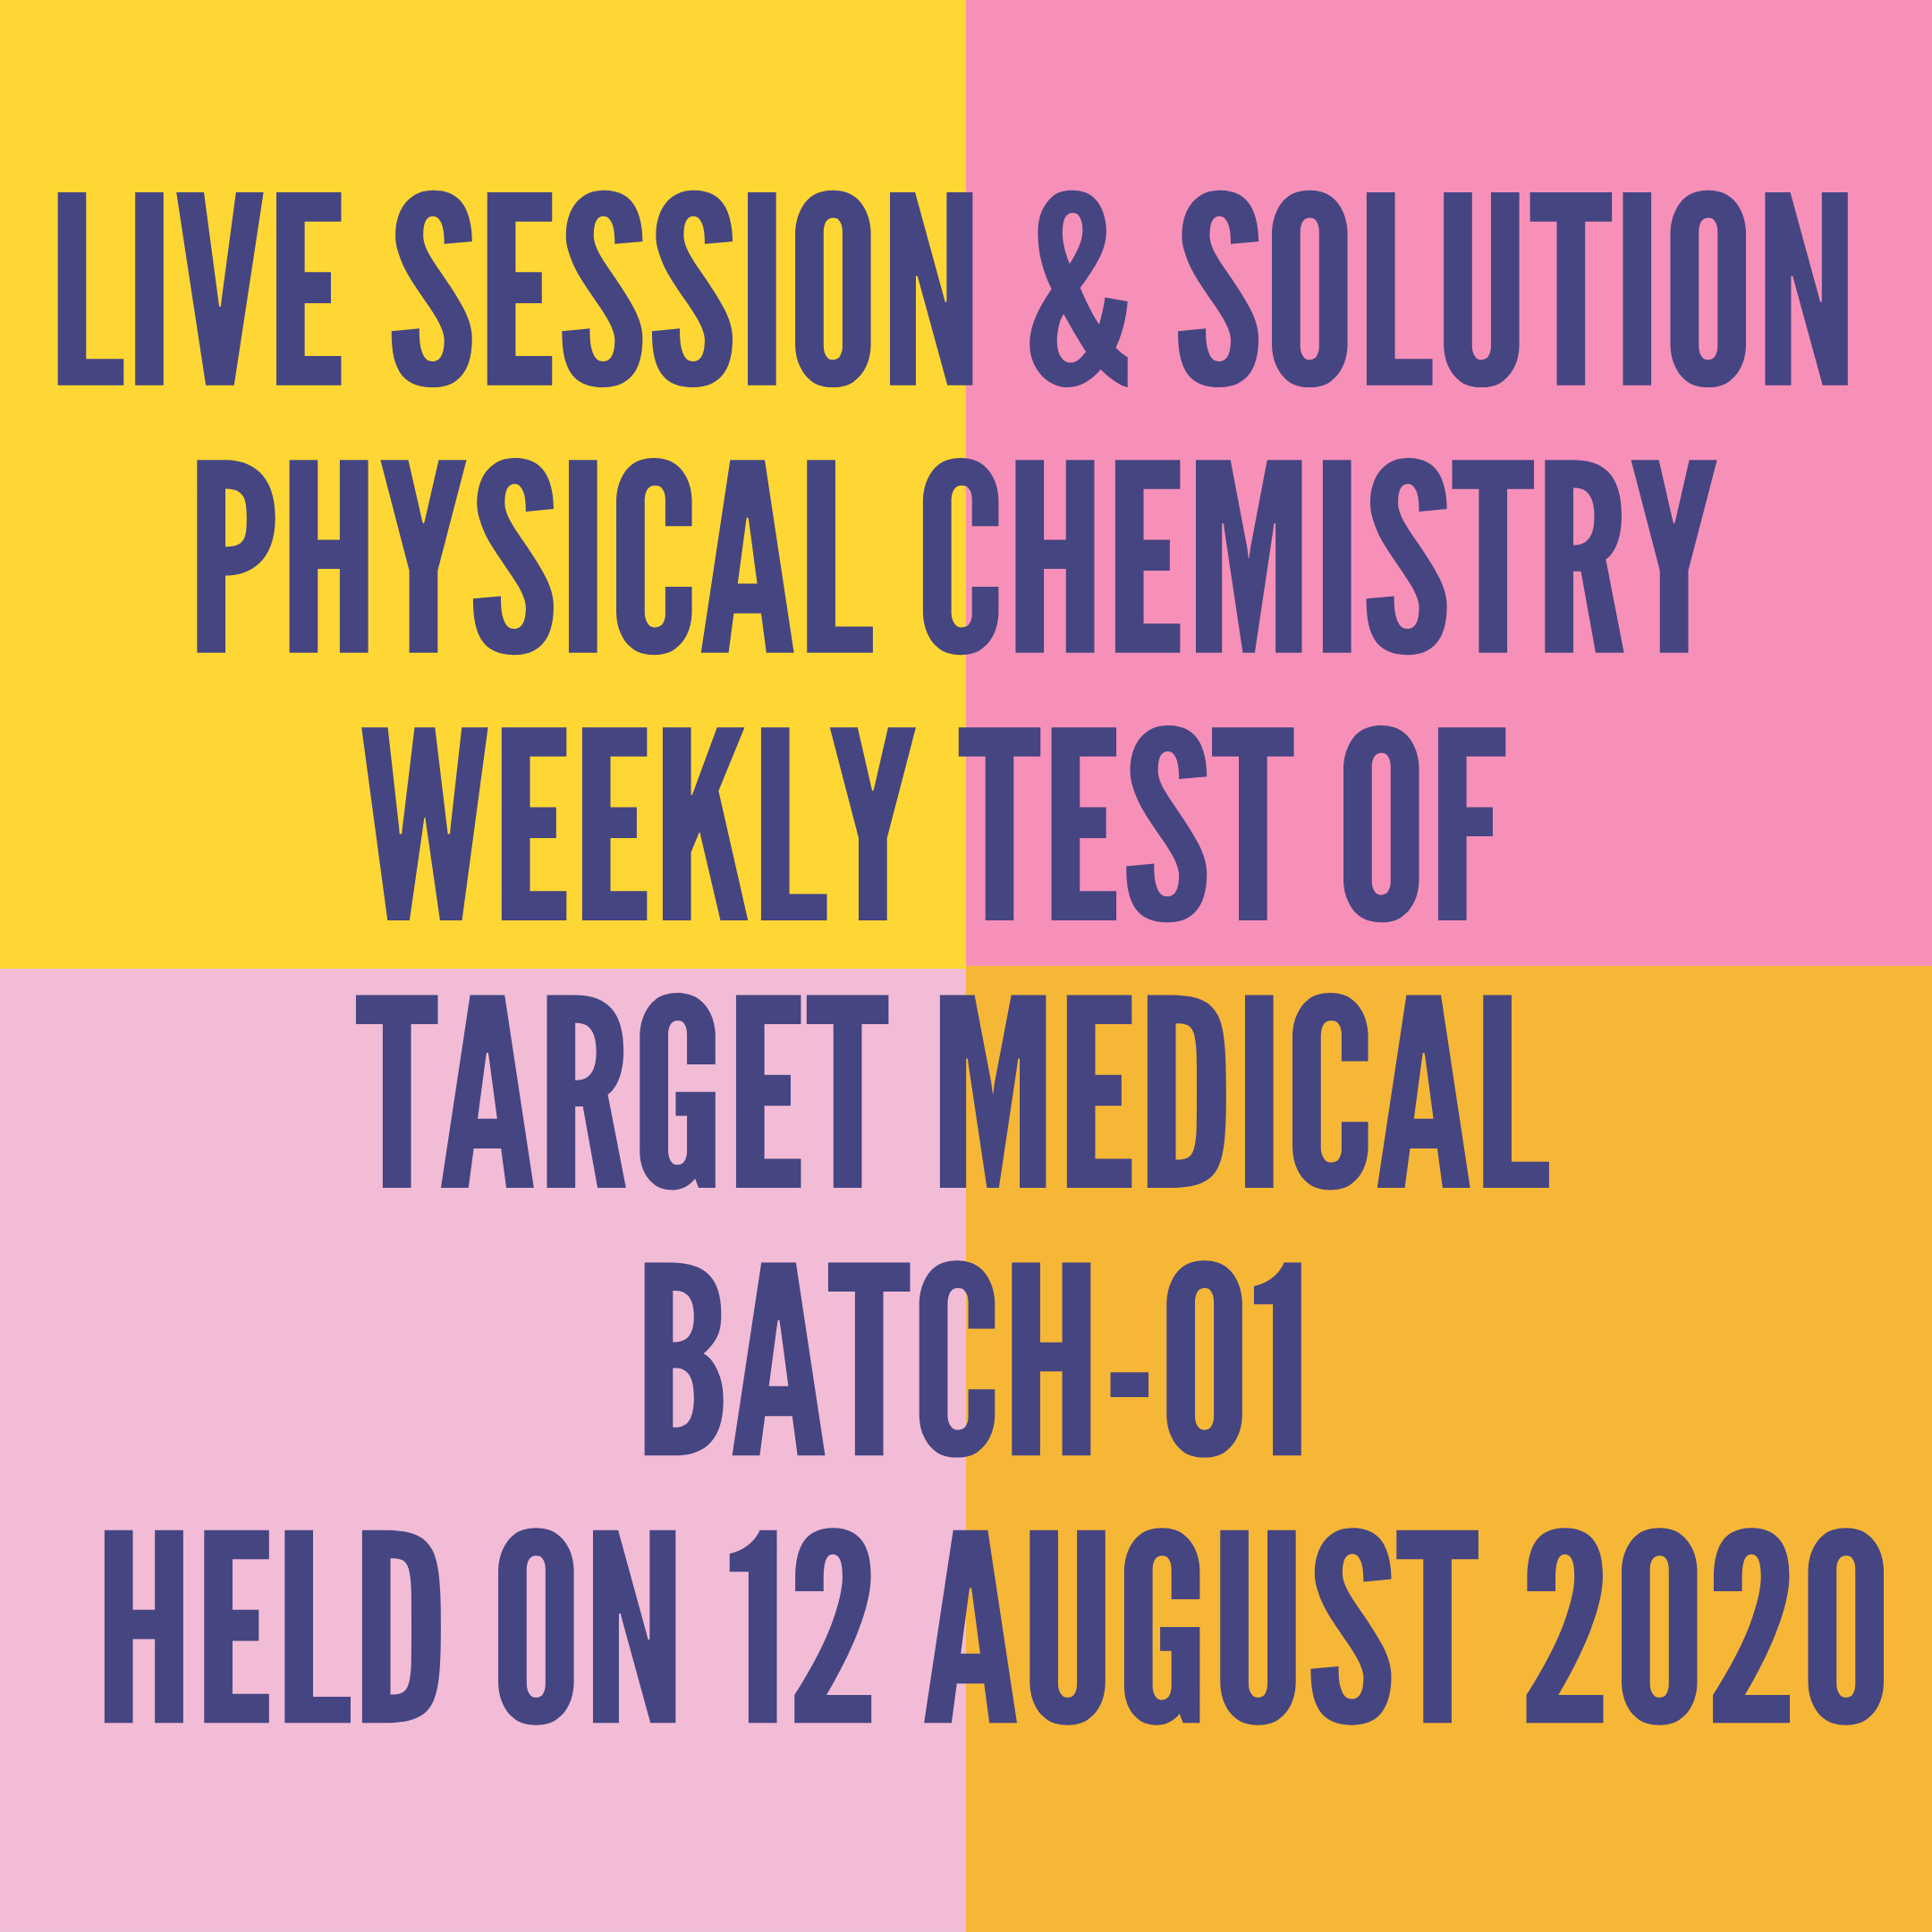 LIVE SESSION & SOLUTION PHYSICAL CHEMISTRY WEEKLY TEST OF TARGET MEDICAL BATCH-01  HELD ON 12 AUGUST 2020